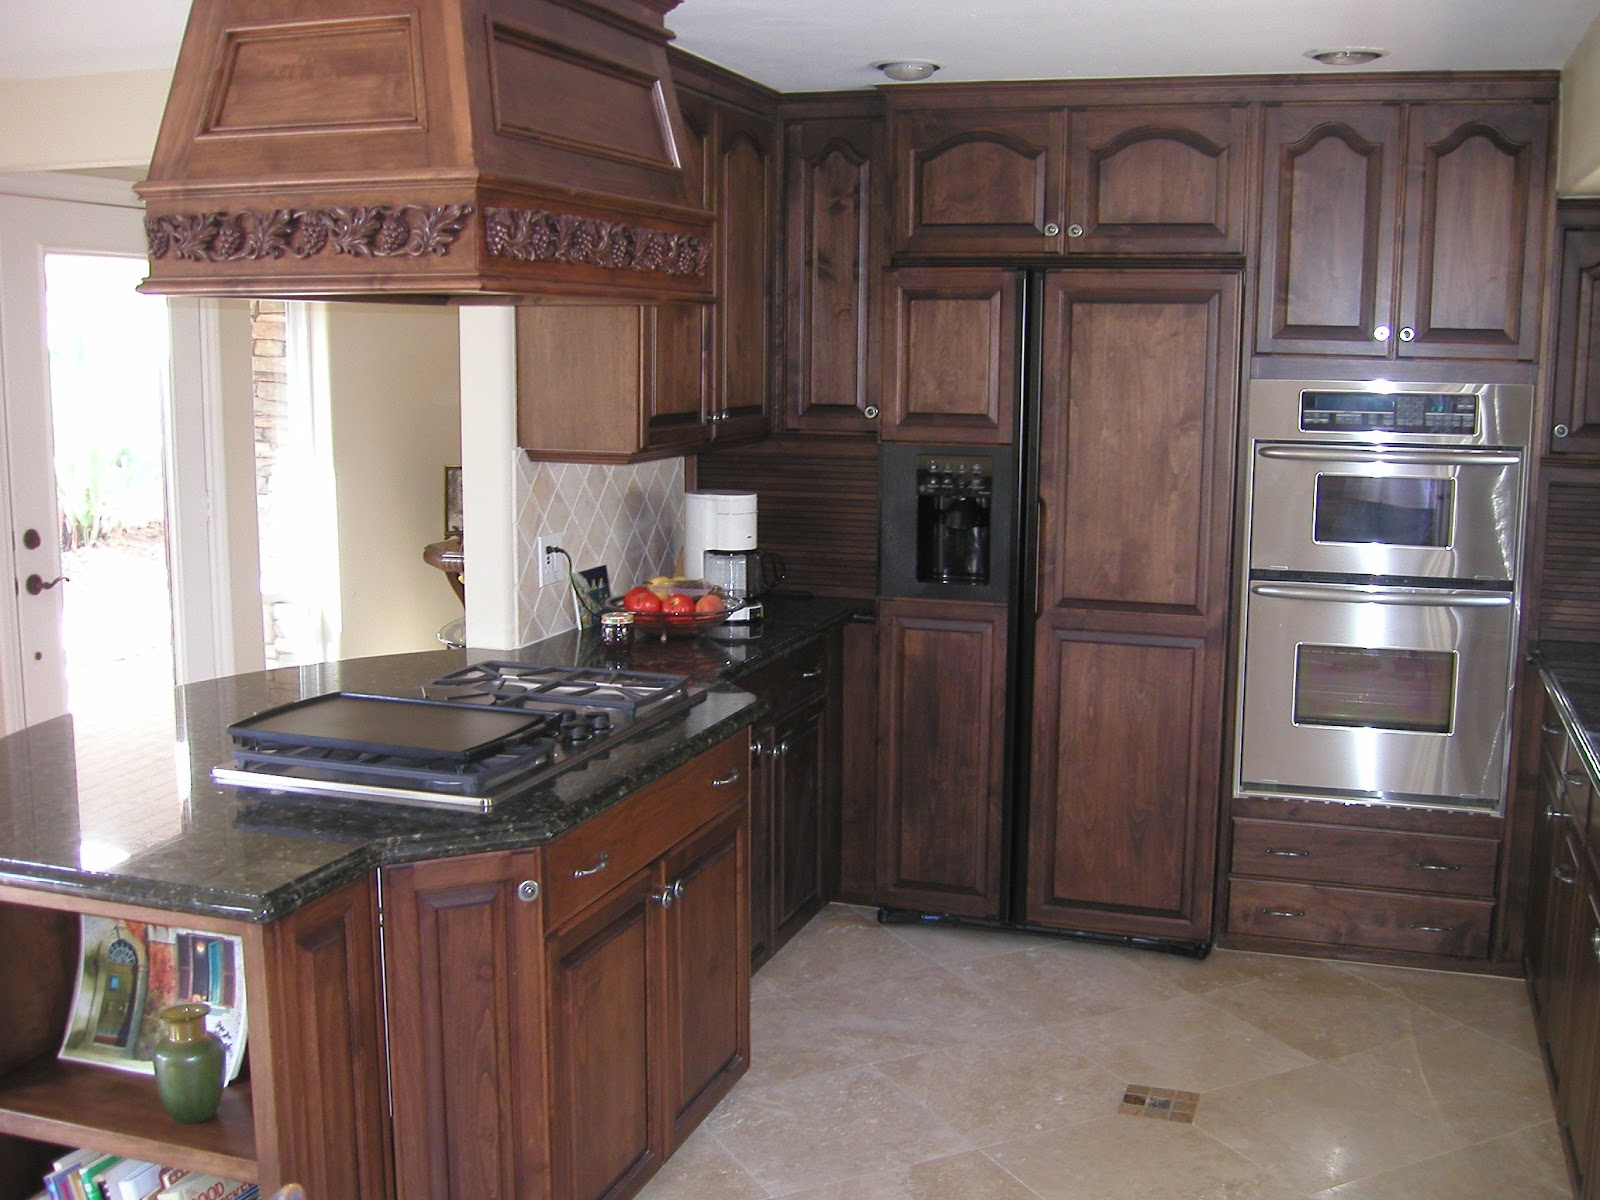 Home design ideas oak kitchen cabinets design ideas for Kitchen ideas for oak cabinets